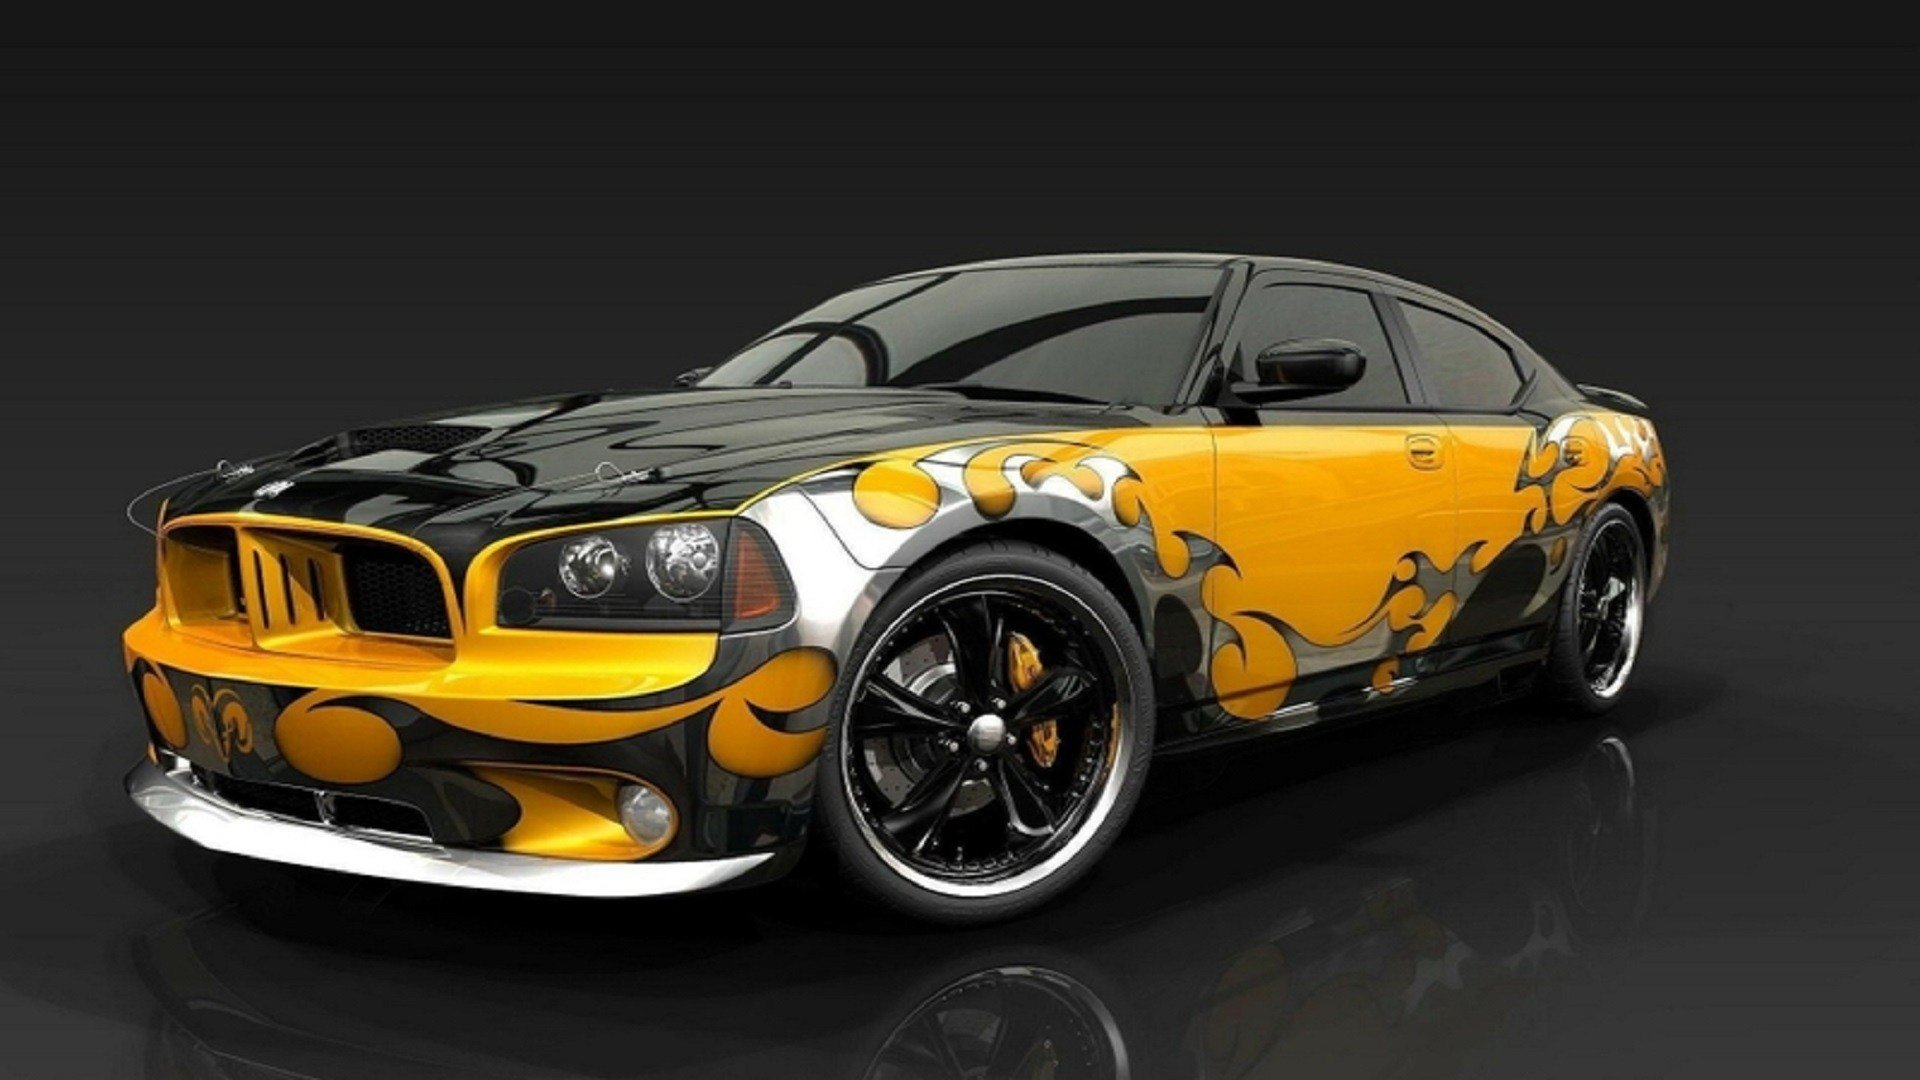 New Muscle Car Wallpapers Hd Free Download For Desktop Mobile On This Month